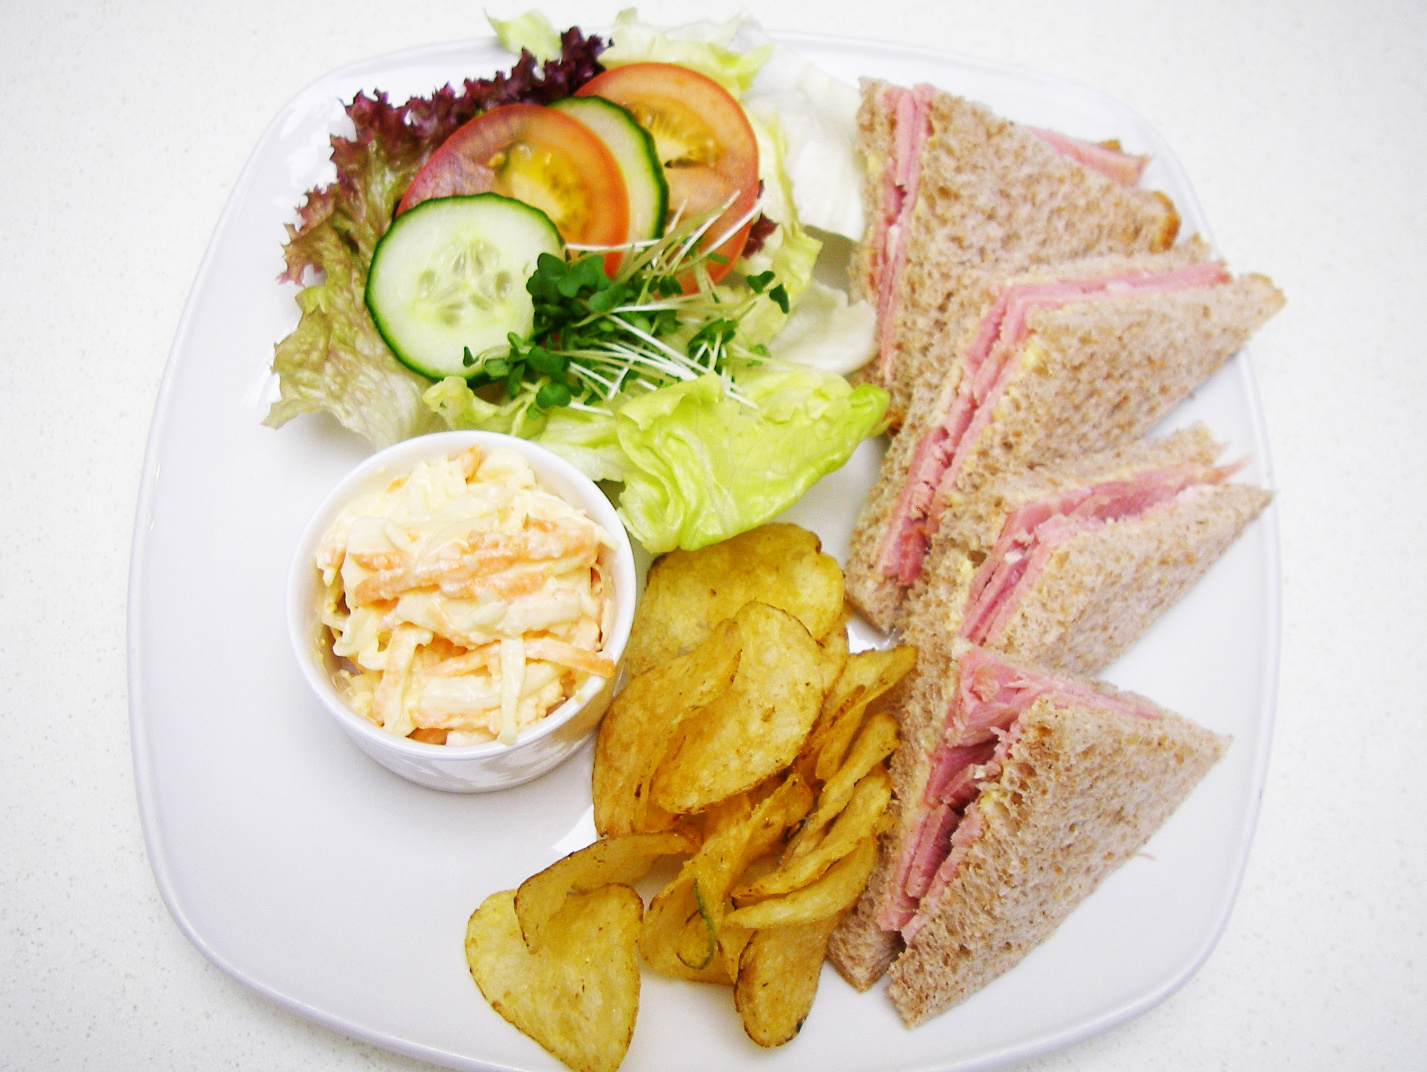 Handmade lunch at Emma's Coffee Lounge Scarborough